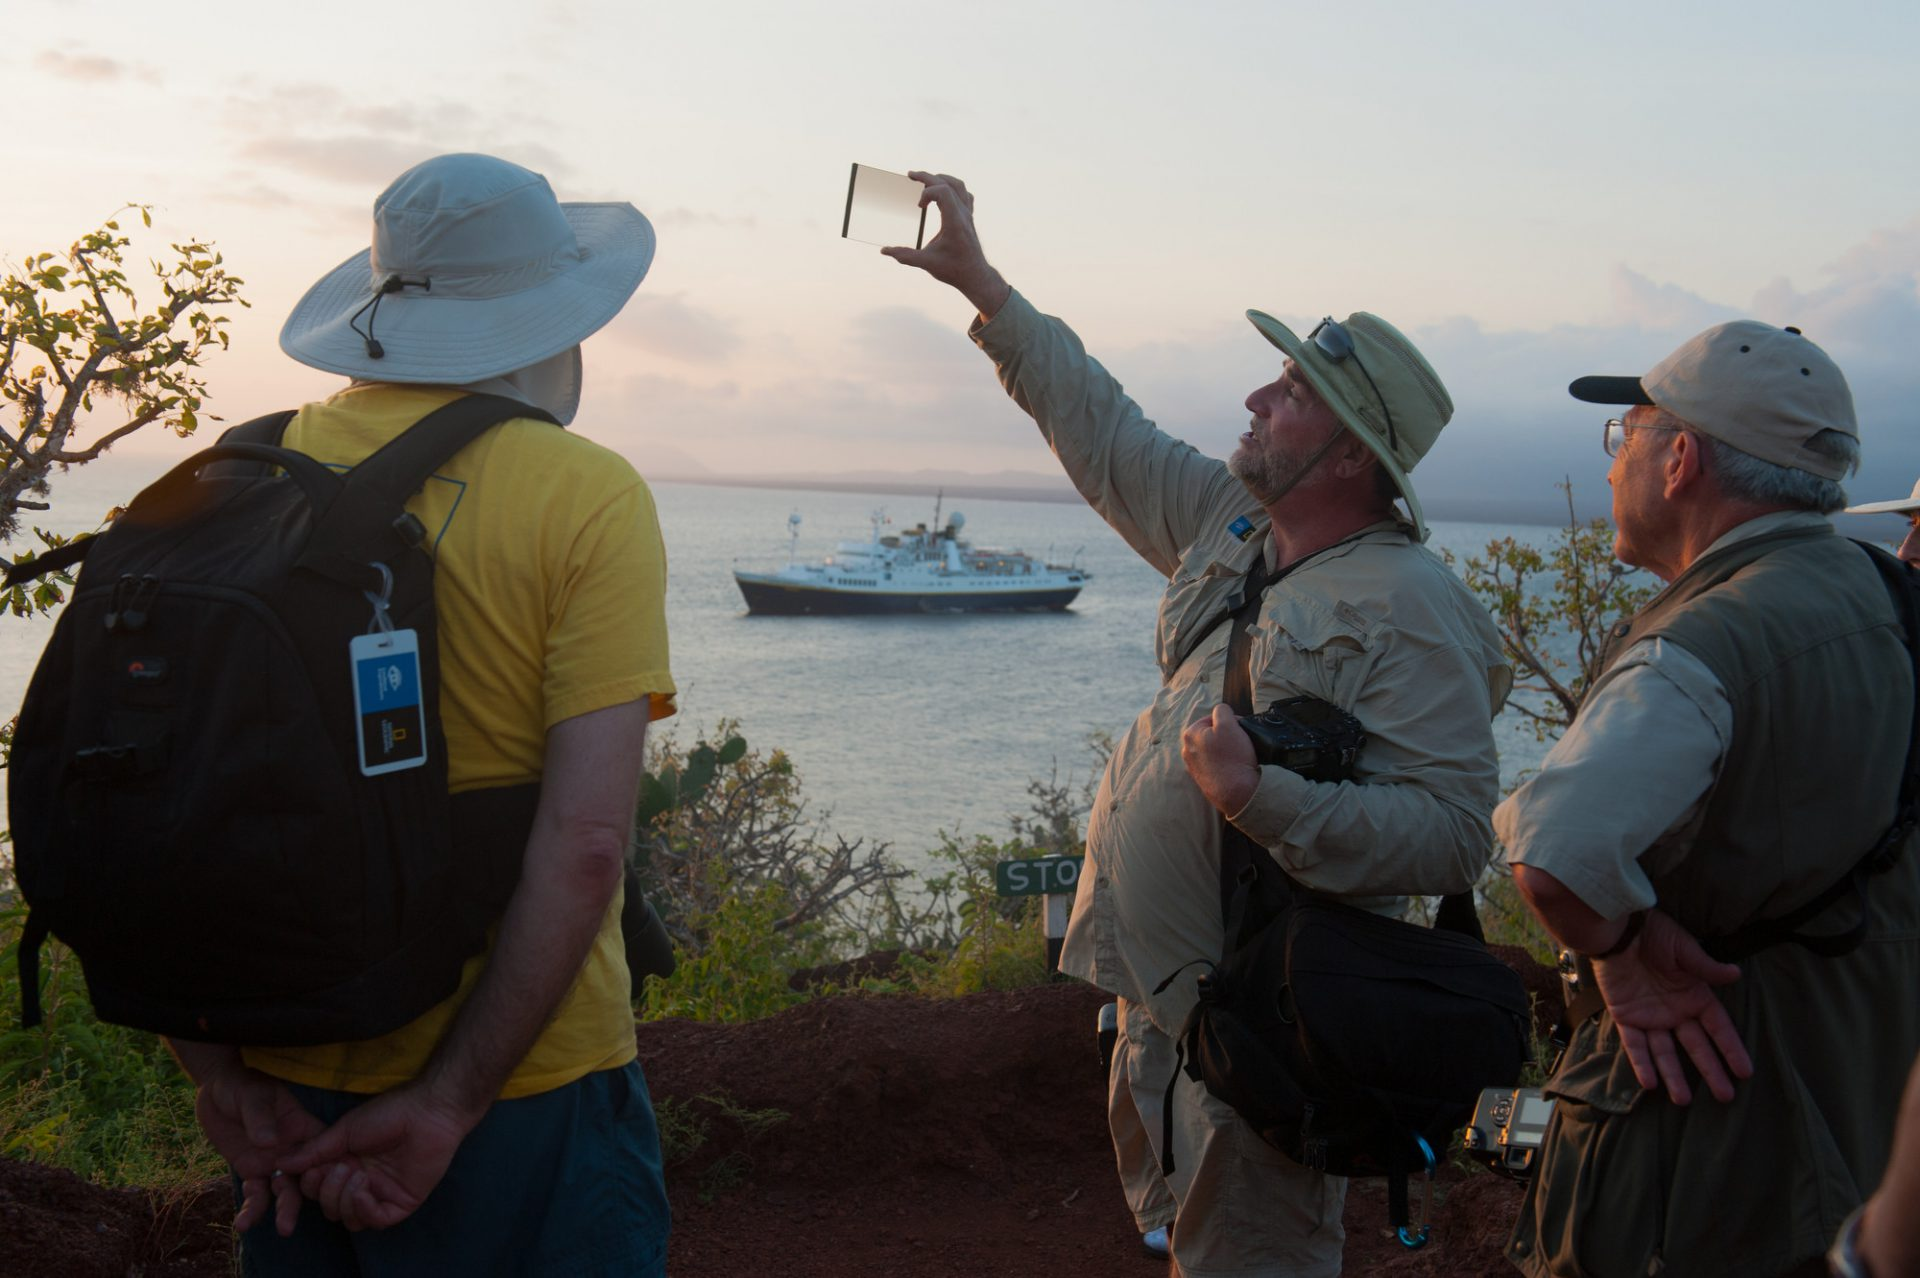 Photo: A nuetral density filter is explained to photography-interested guests on Rabida Island in Galapagos National Park.